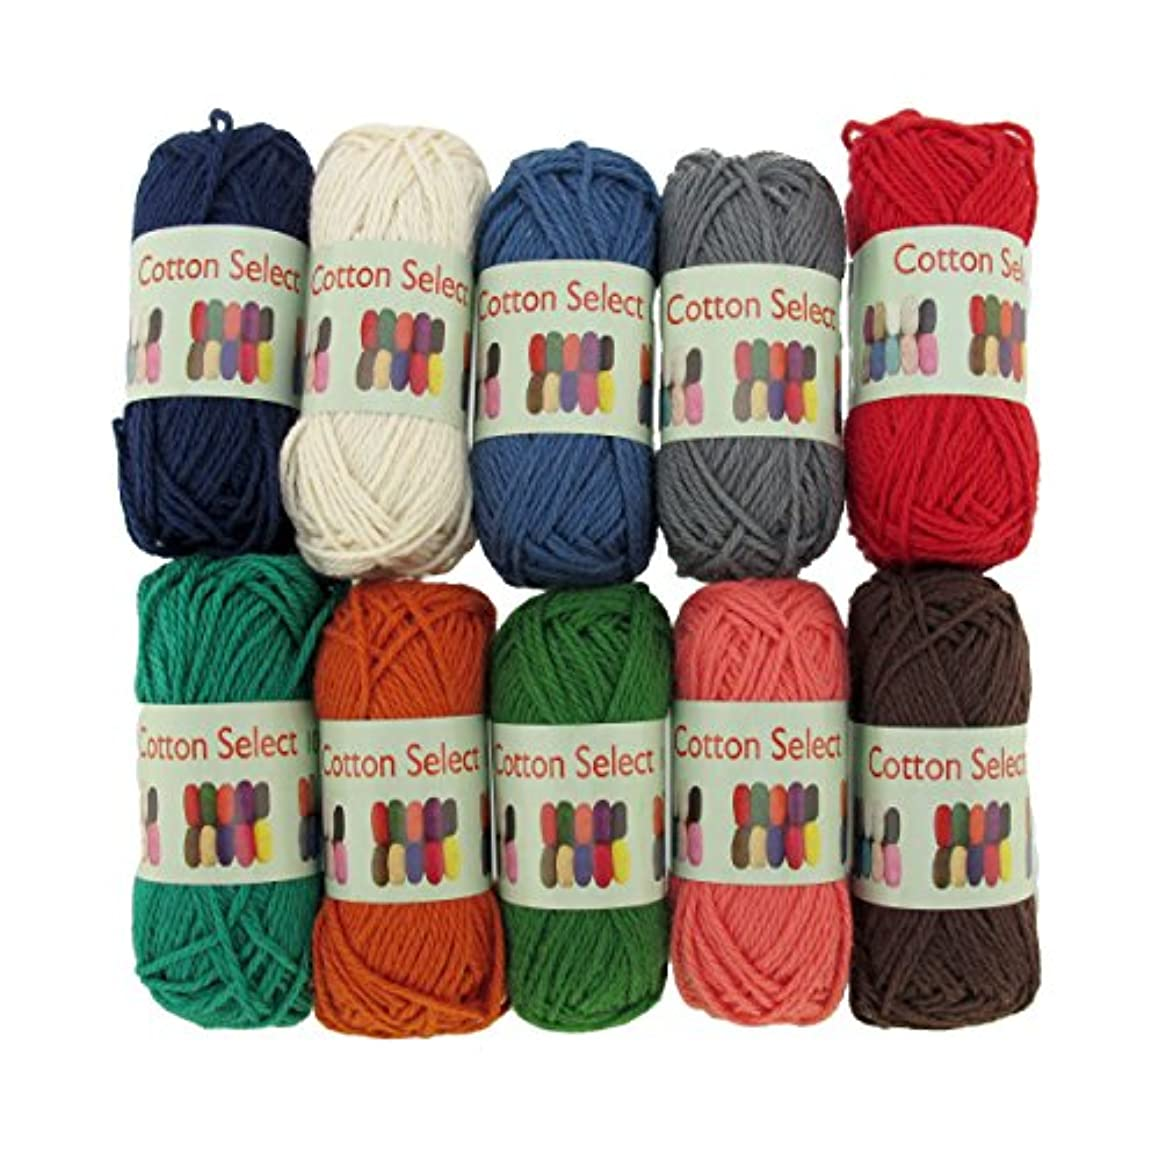 BambooMN Brand - Cotton Select Bonbon Yarns - Assortment 96 (Color D) - 10x 10g Solid Color Mini Ball - 1 Pack